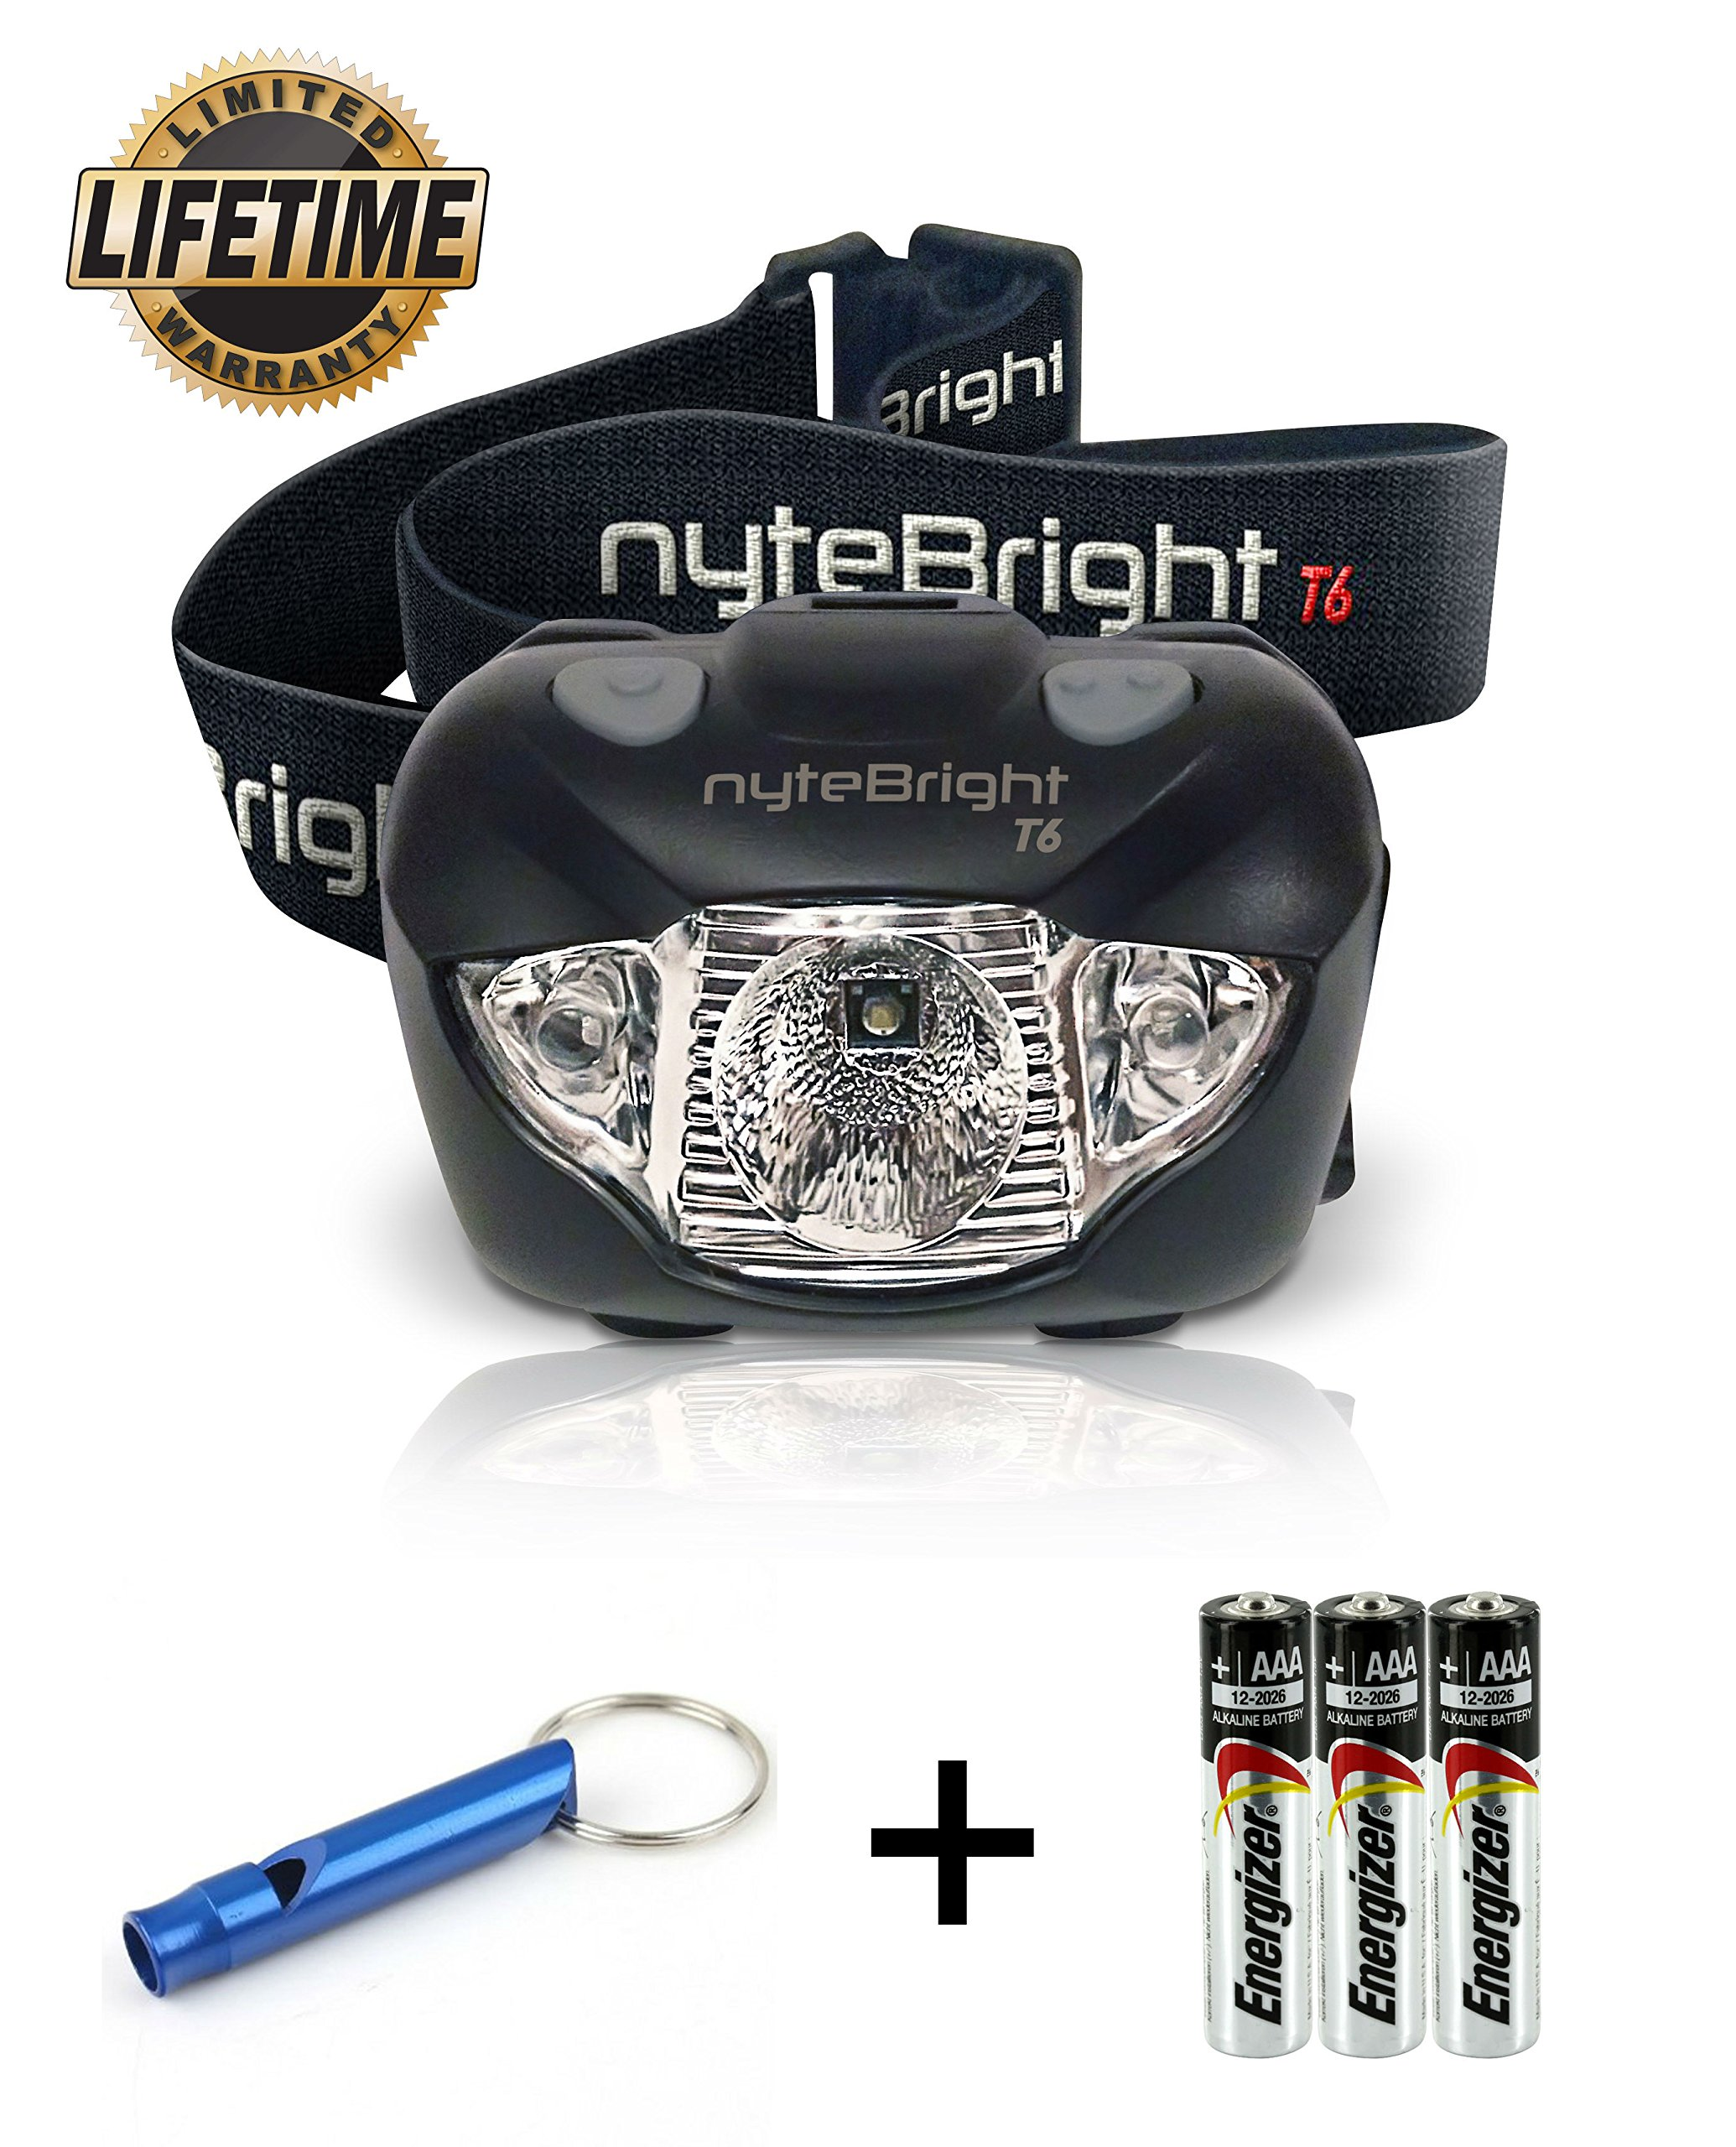 LED Headlamp Flashlight with Red Light – Brightest Headlight for Camping Hiking Running Backpacking Hunting Walking Reading - Waterproof Headlamps - Best Work Head Lamp Light with FREE Batteries! by nyteBright (Image #1)